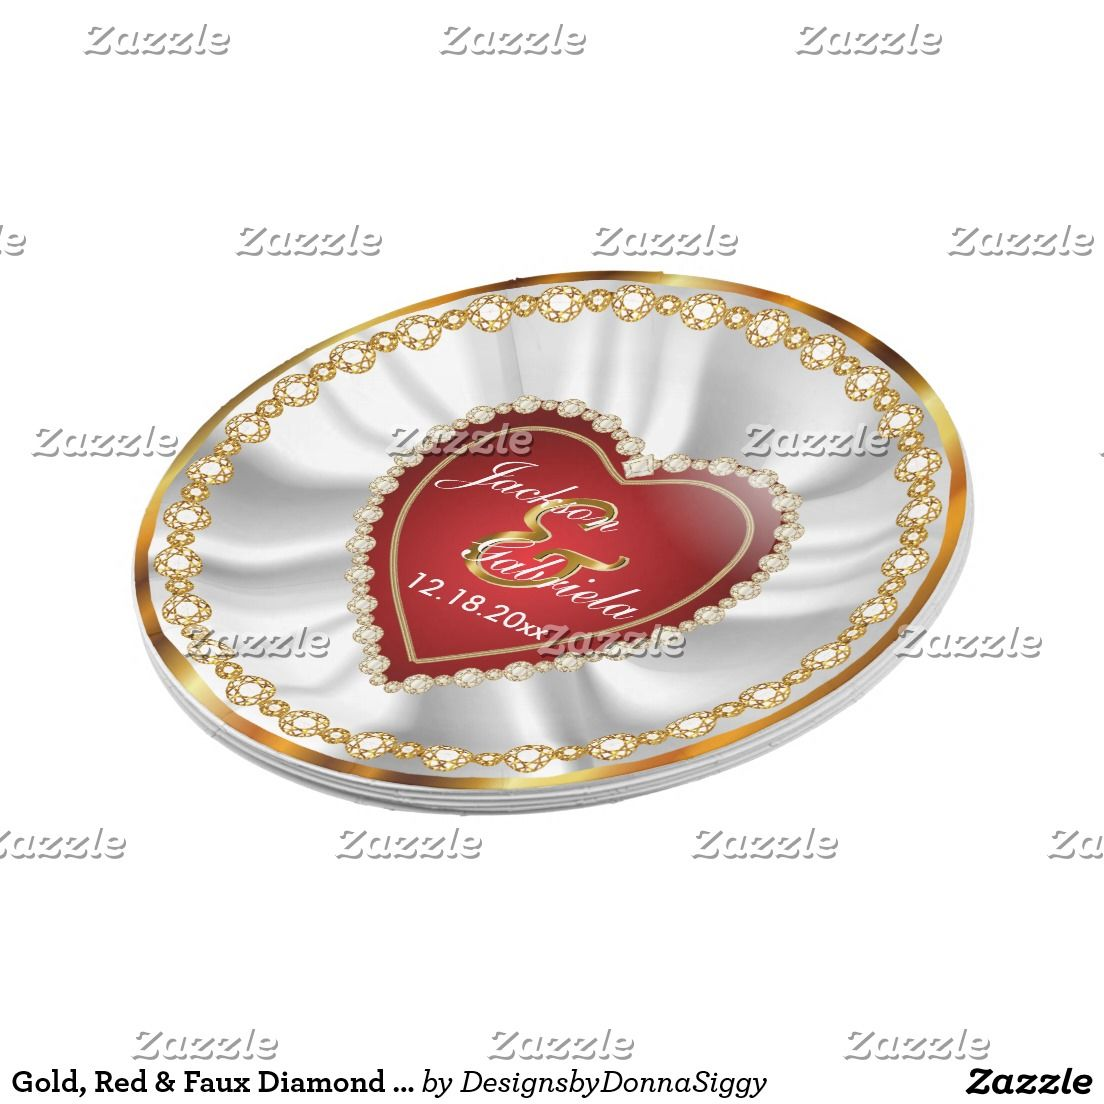 Gold, Red & Faux Diamond Wedding or Anniversary Paper Plate ...